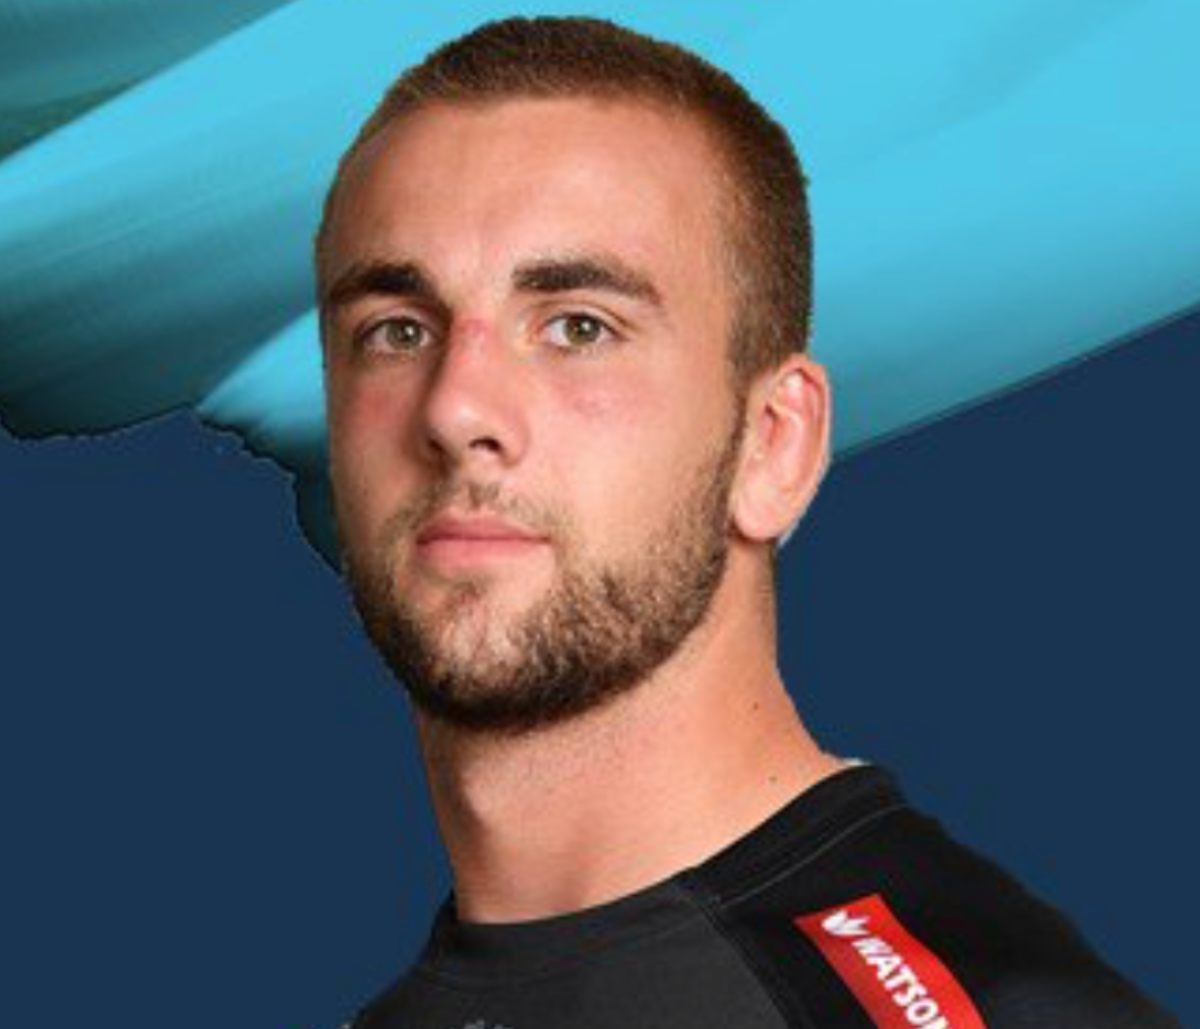 Sean Lonsdale scored his second senior try for Exeter Chiefs